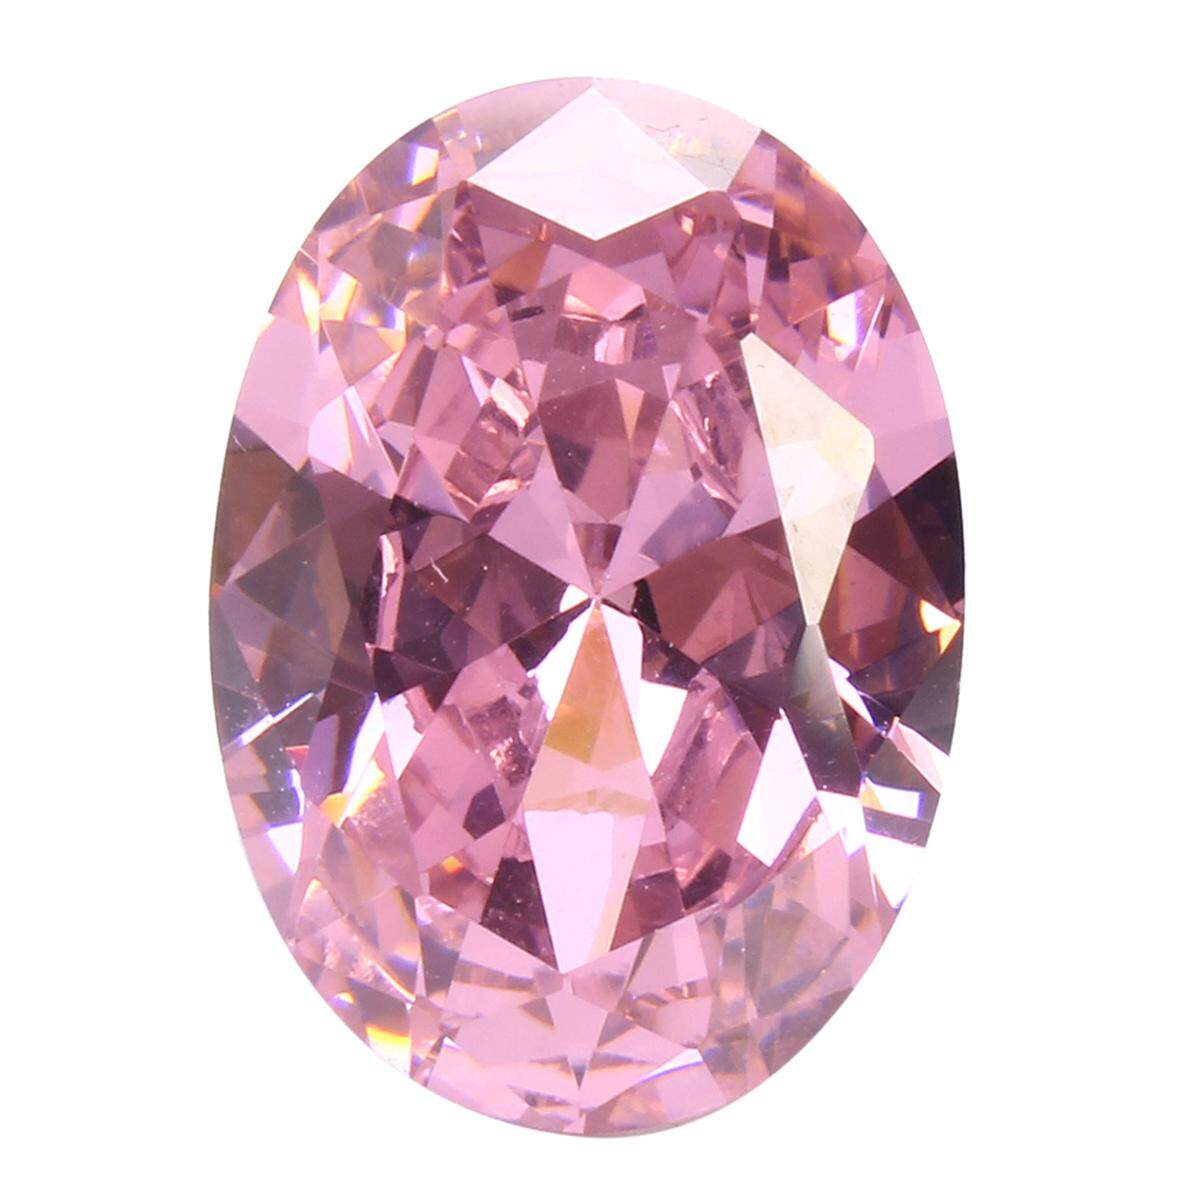 60214af2cf9 AAA Pale Pink Sapphire Gems Oval Faceted Cut 4.26ct VVS Loose Gemstone 5  Sizes